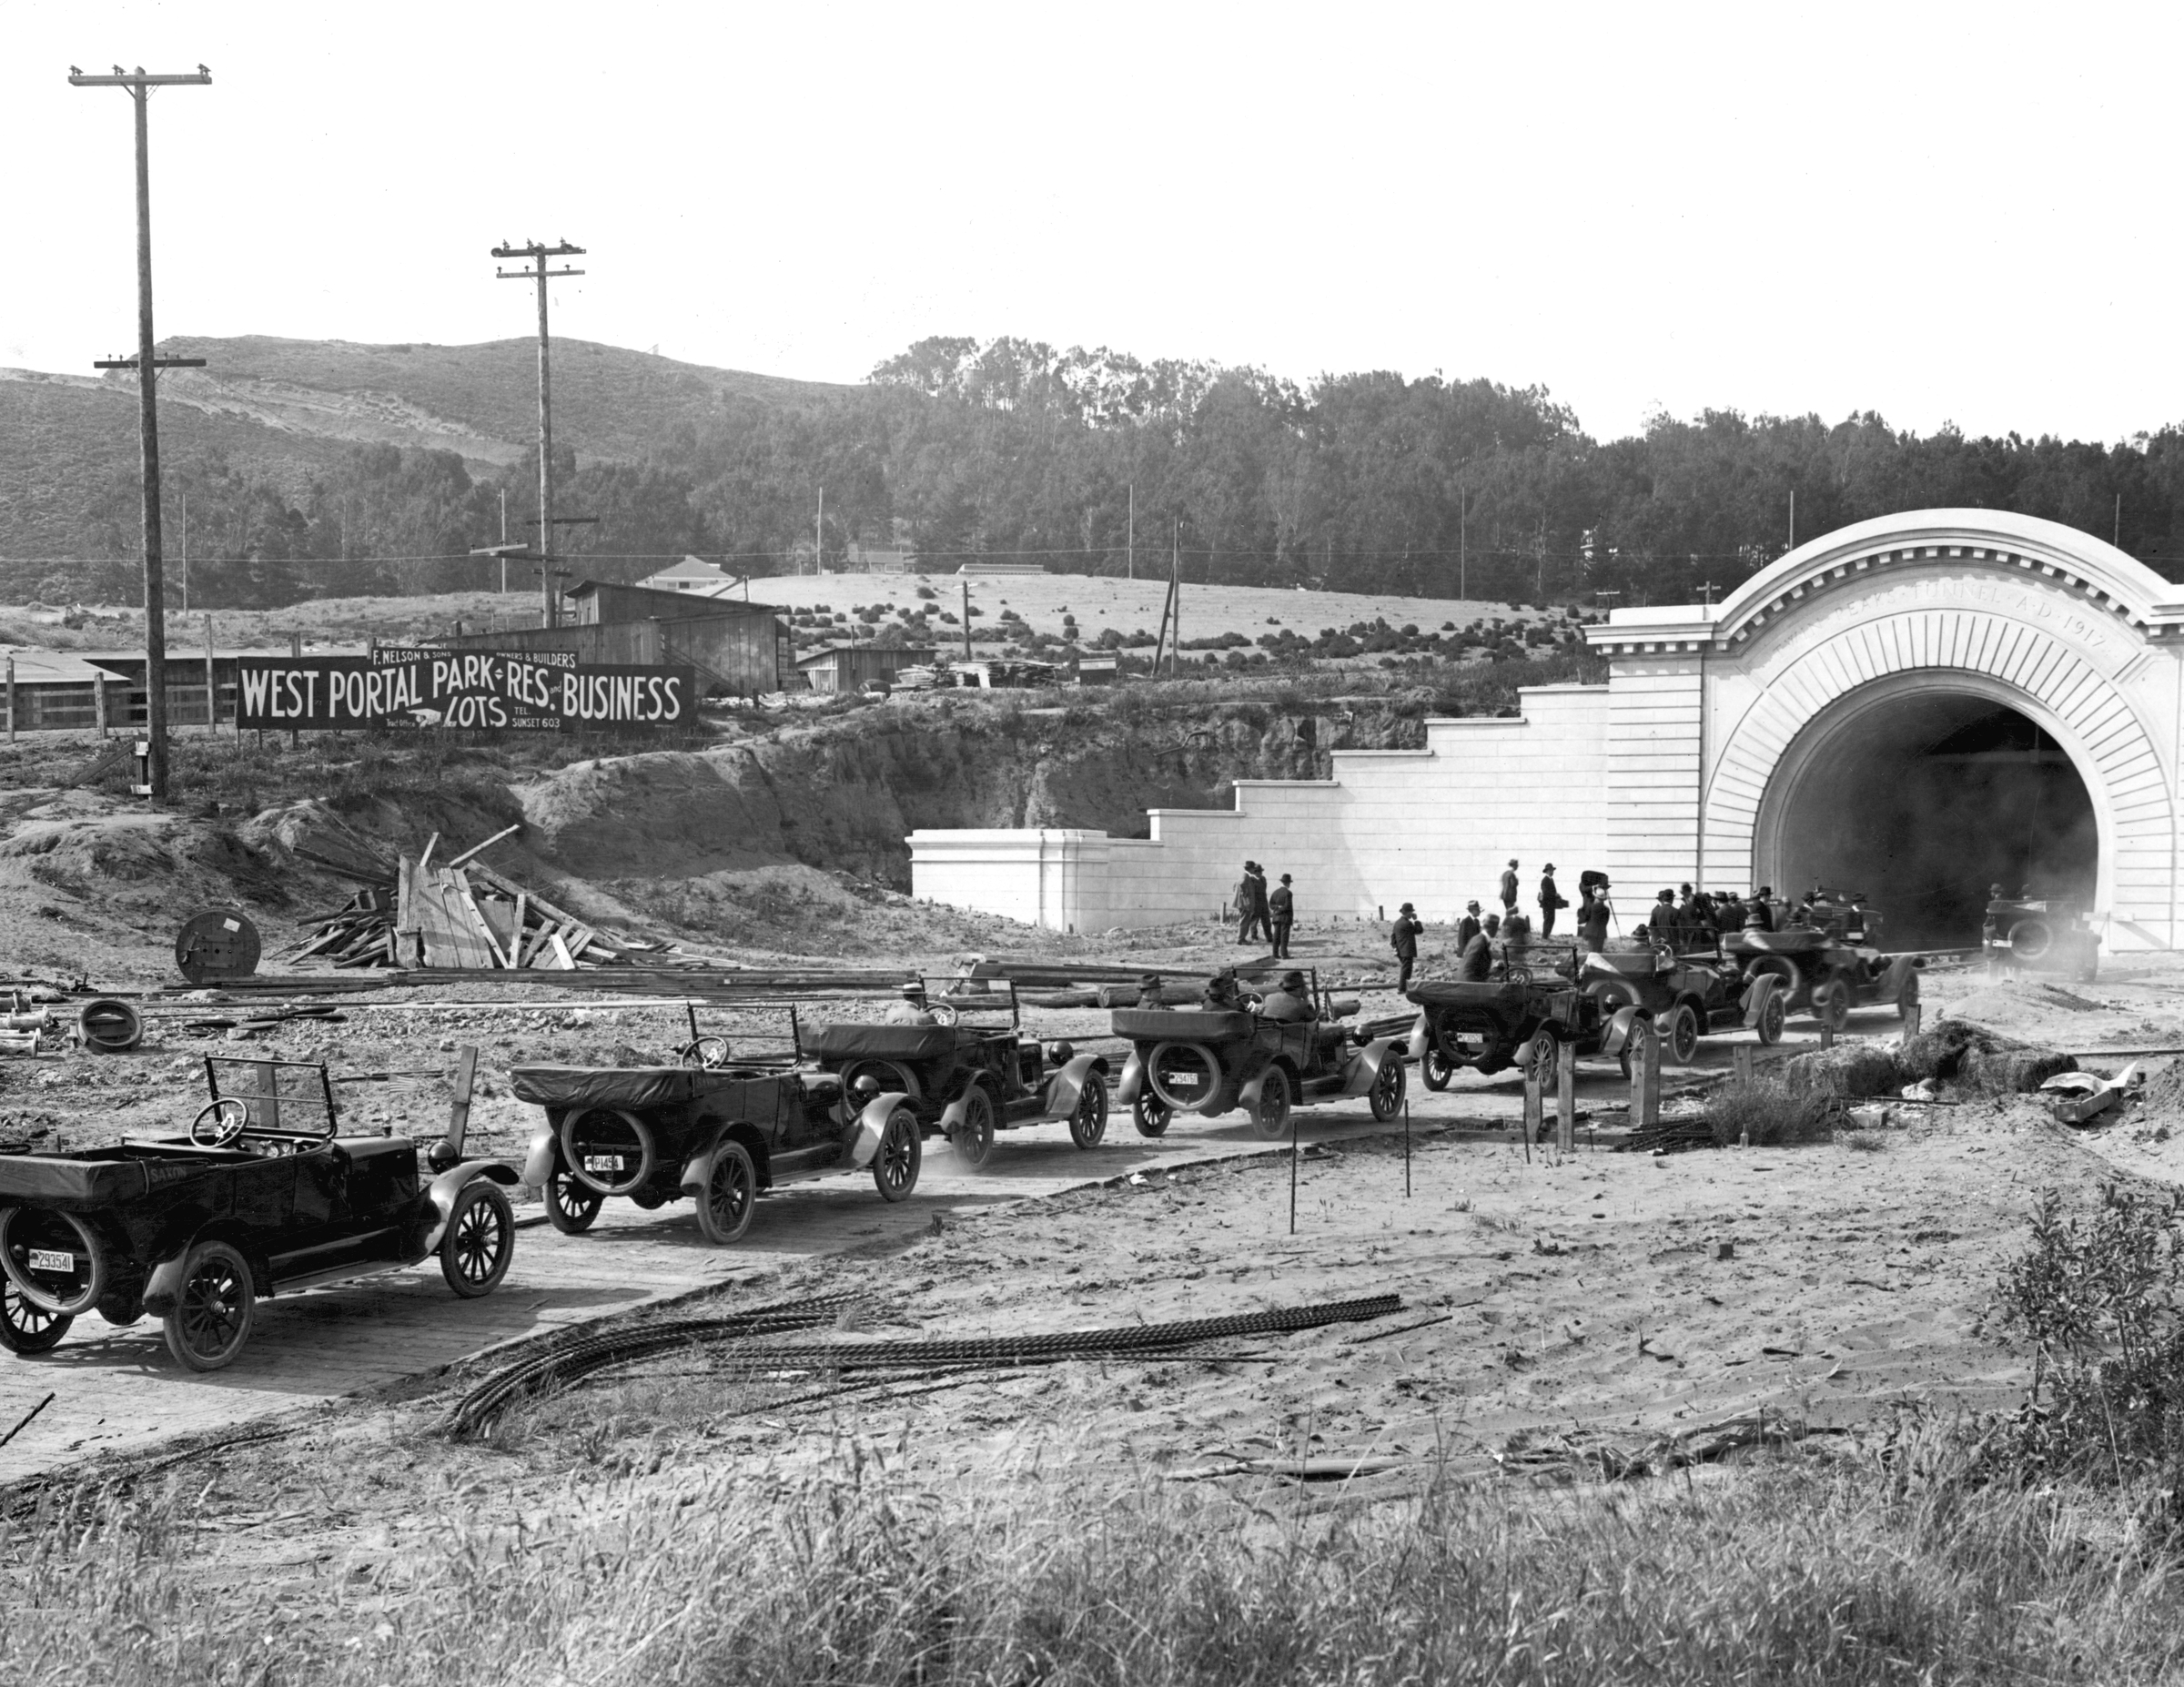 Cars line up to drive through the Twin Peaks Tunnel during the tunnel's opening ceremony in February 1918.